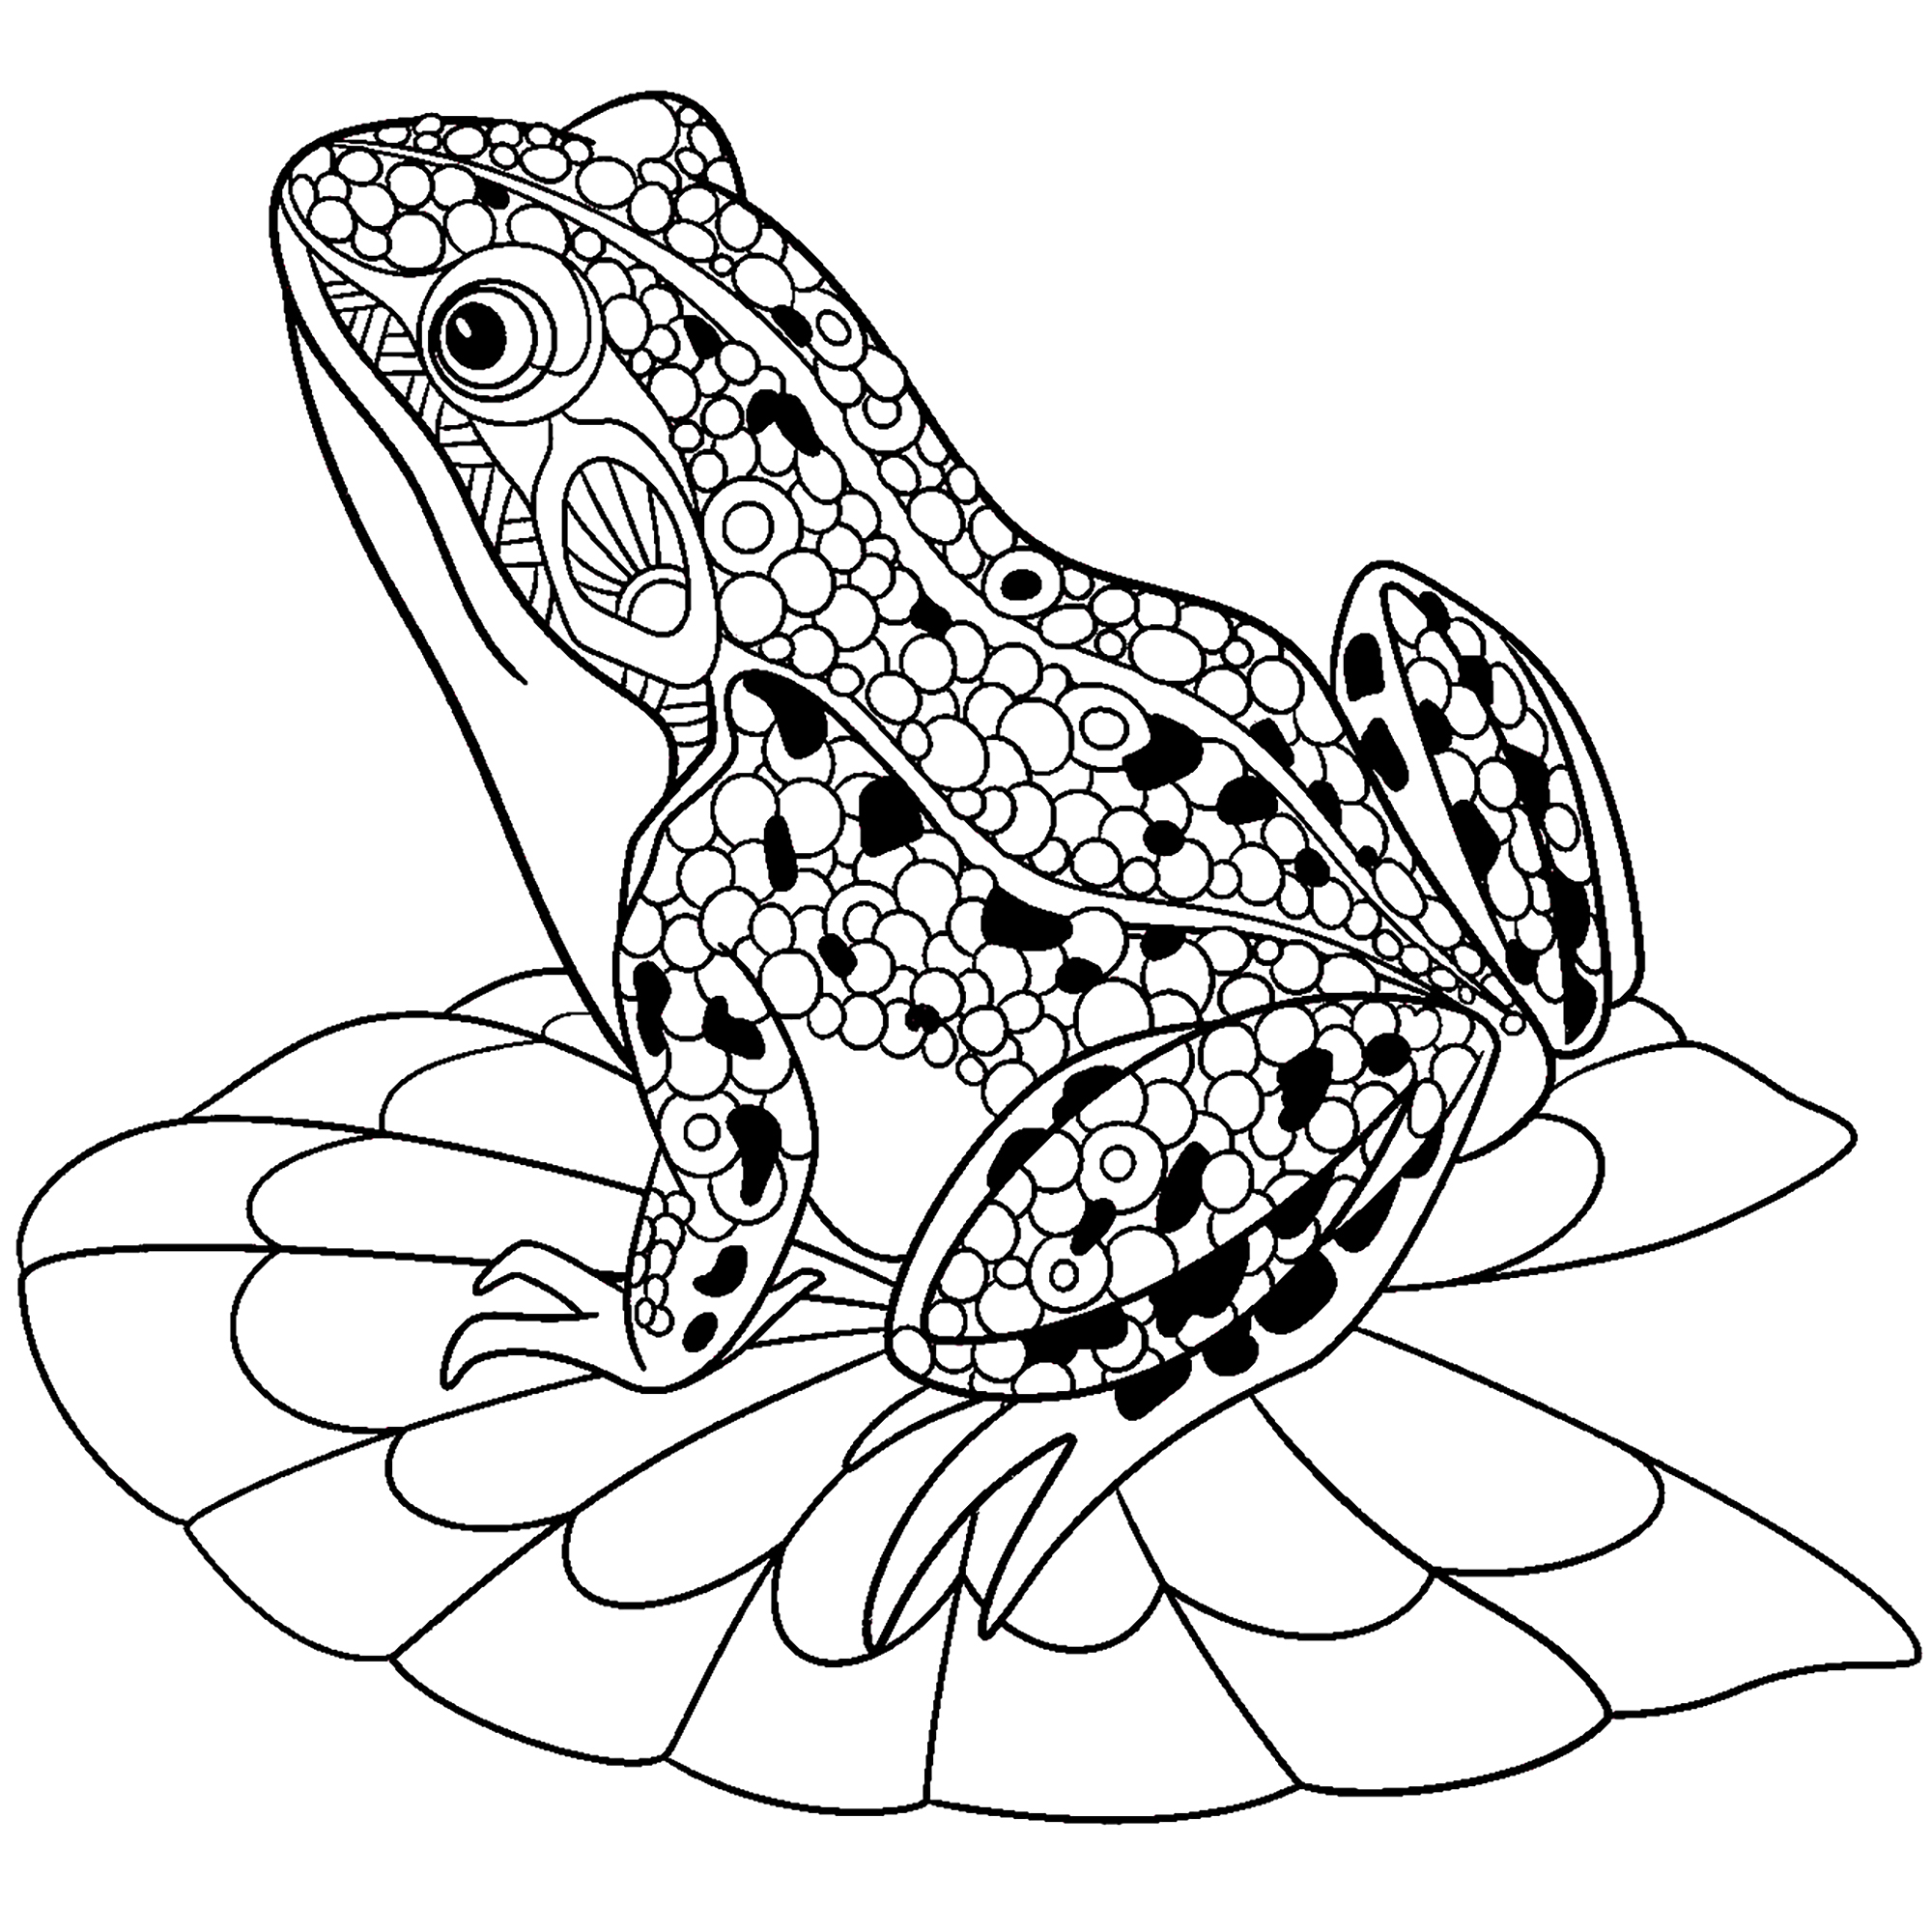 Simple Frogs coloring page to print and color for free